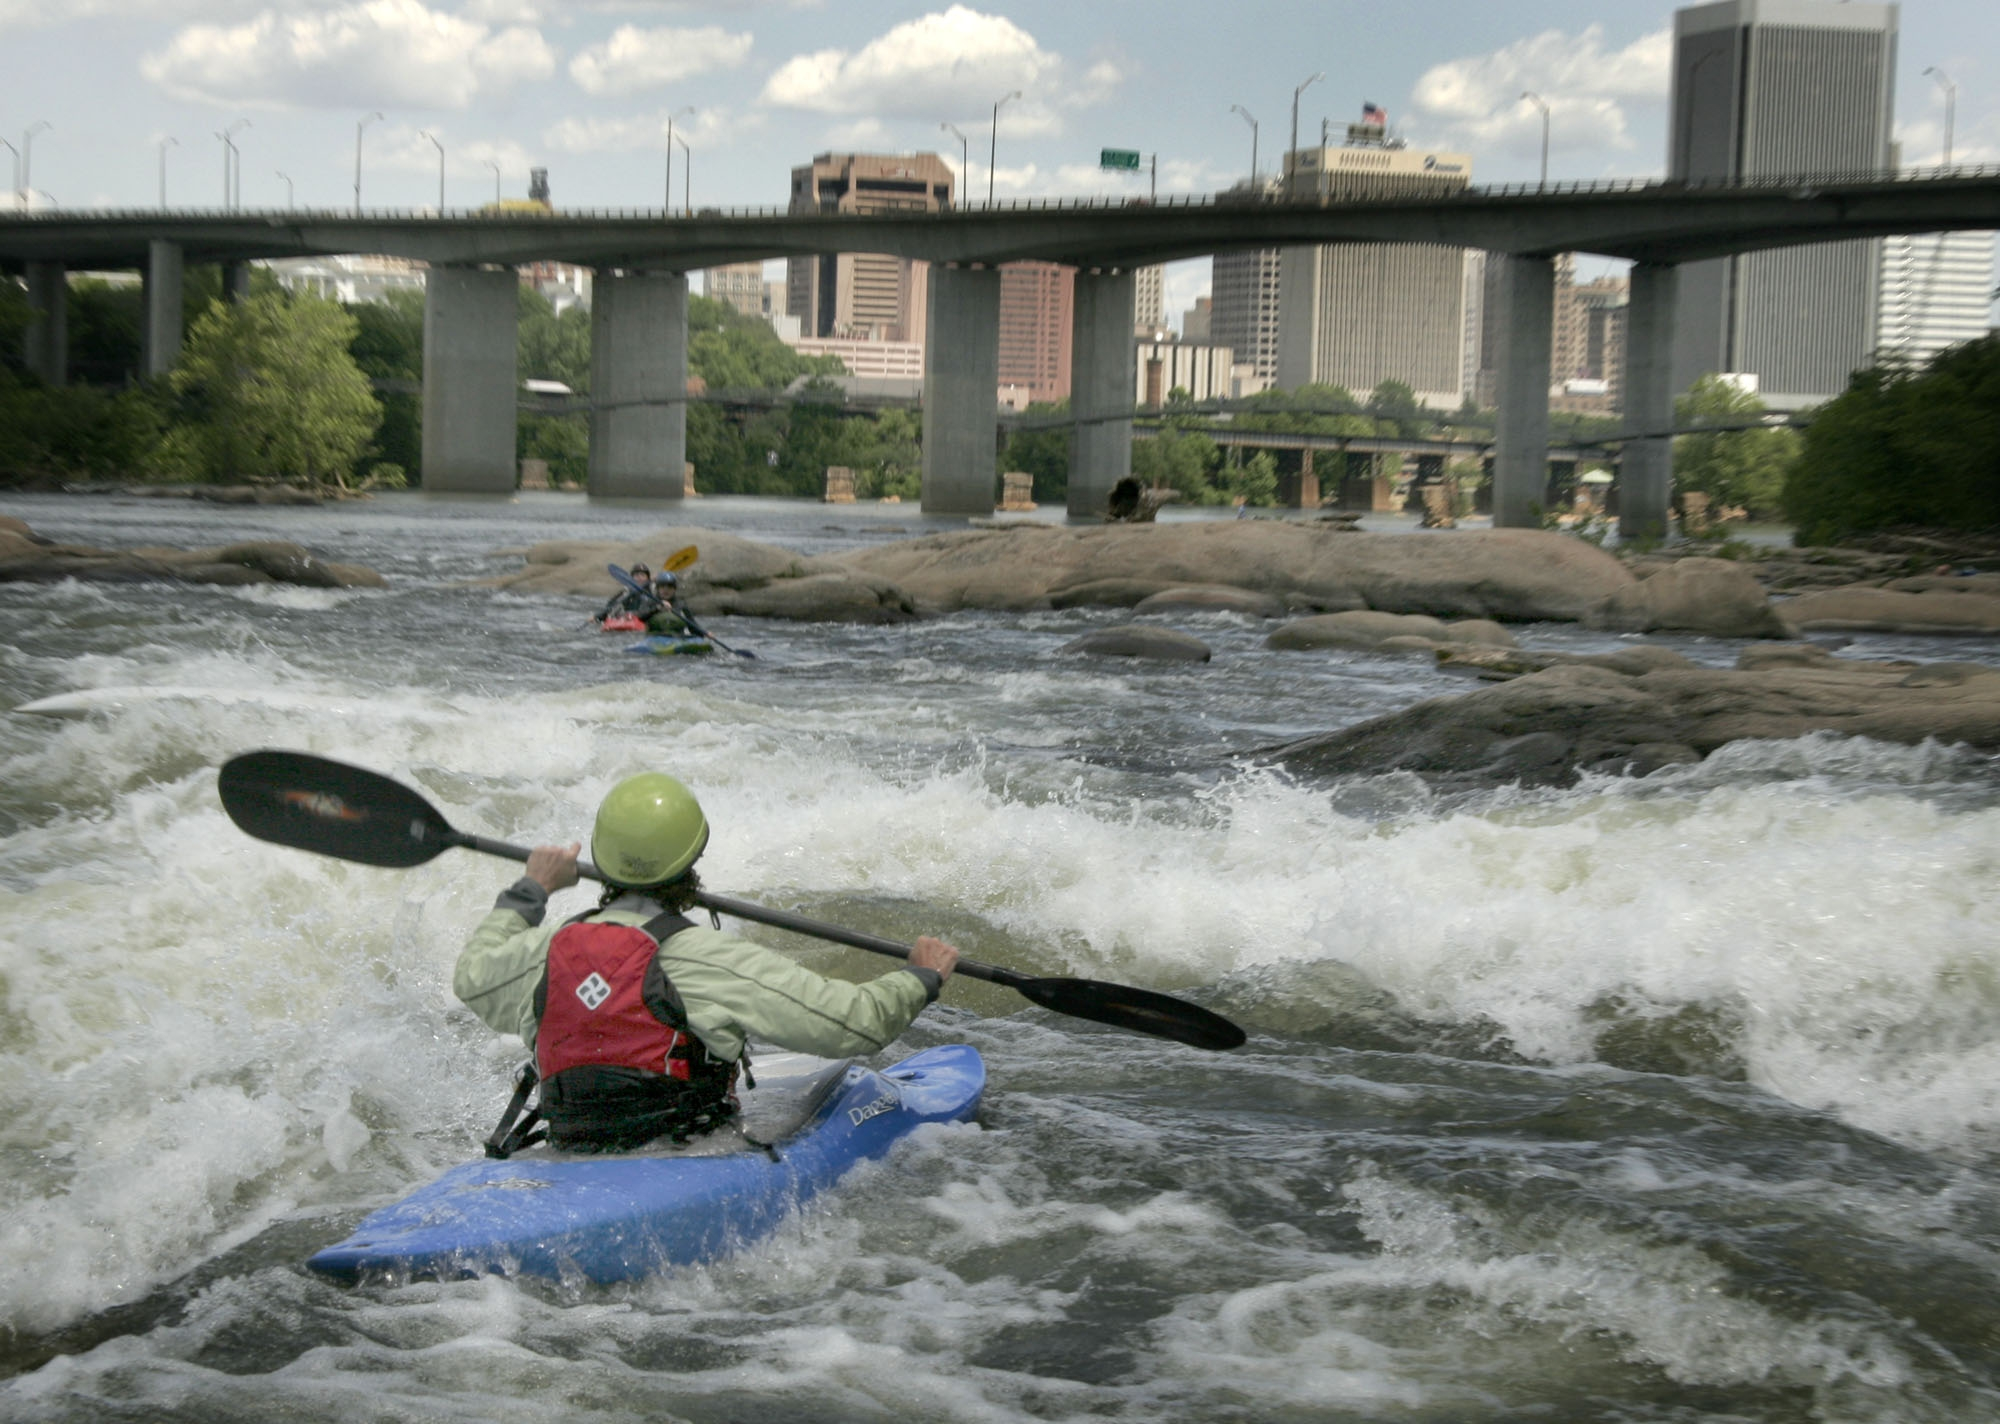 Kayaking on the James River